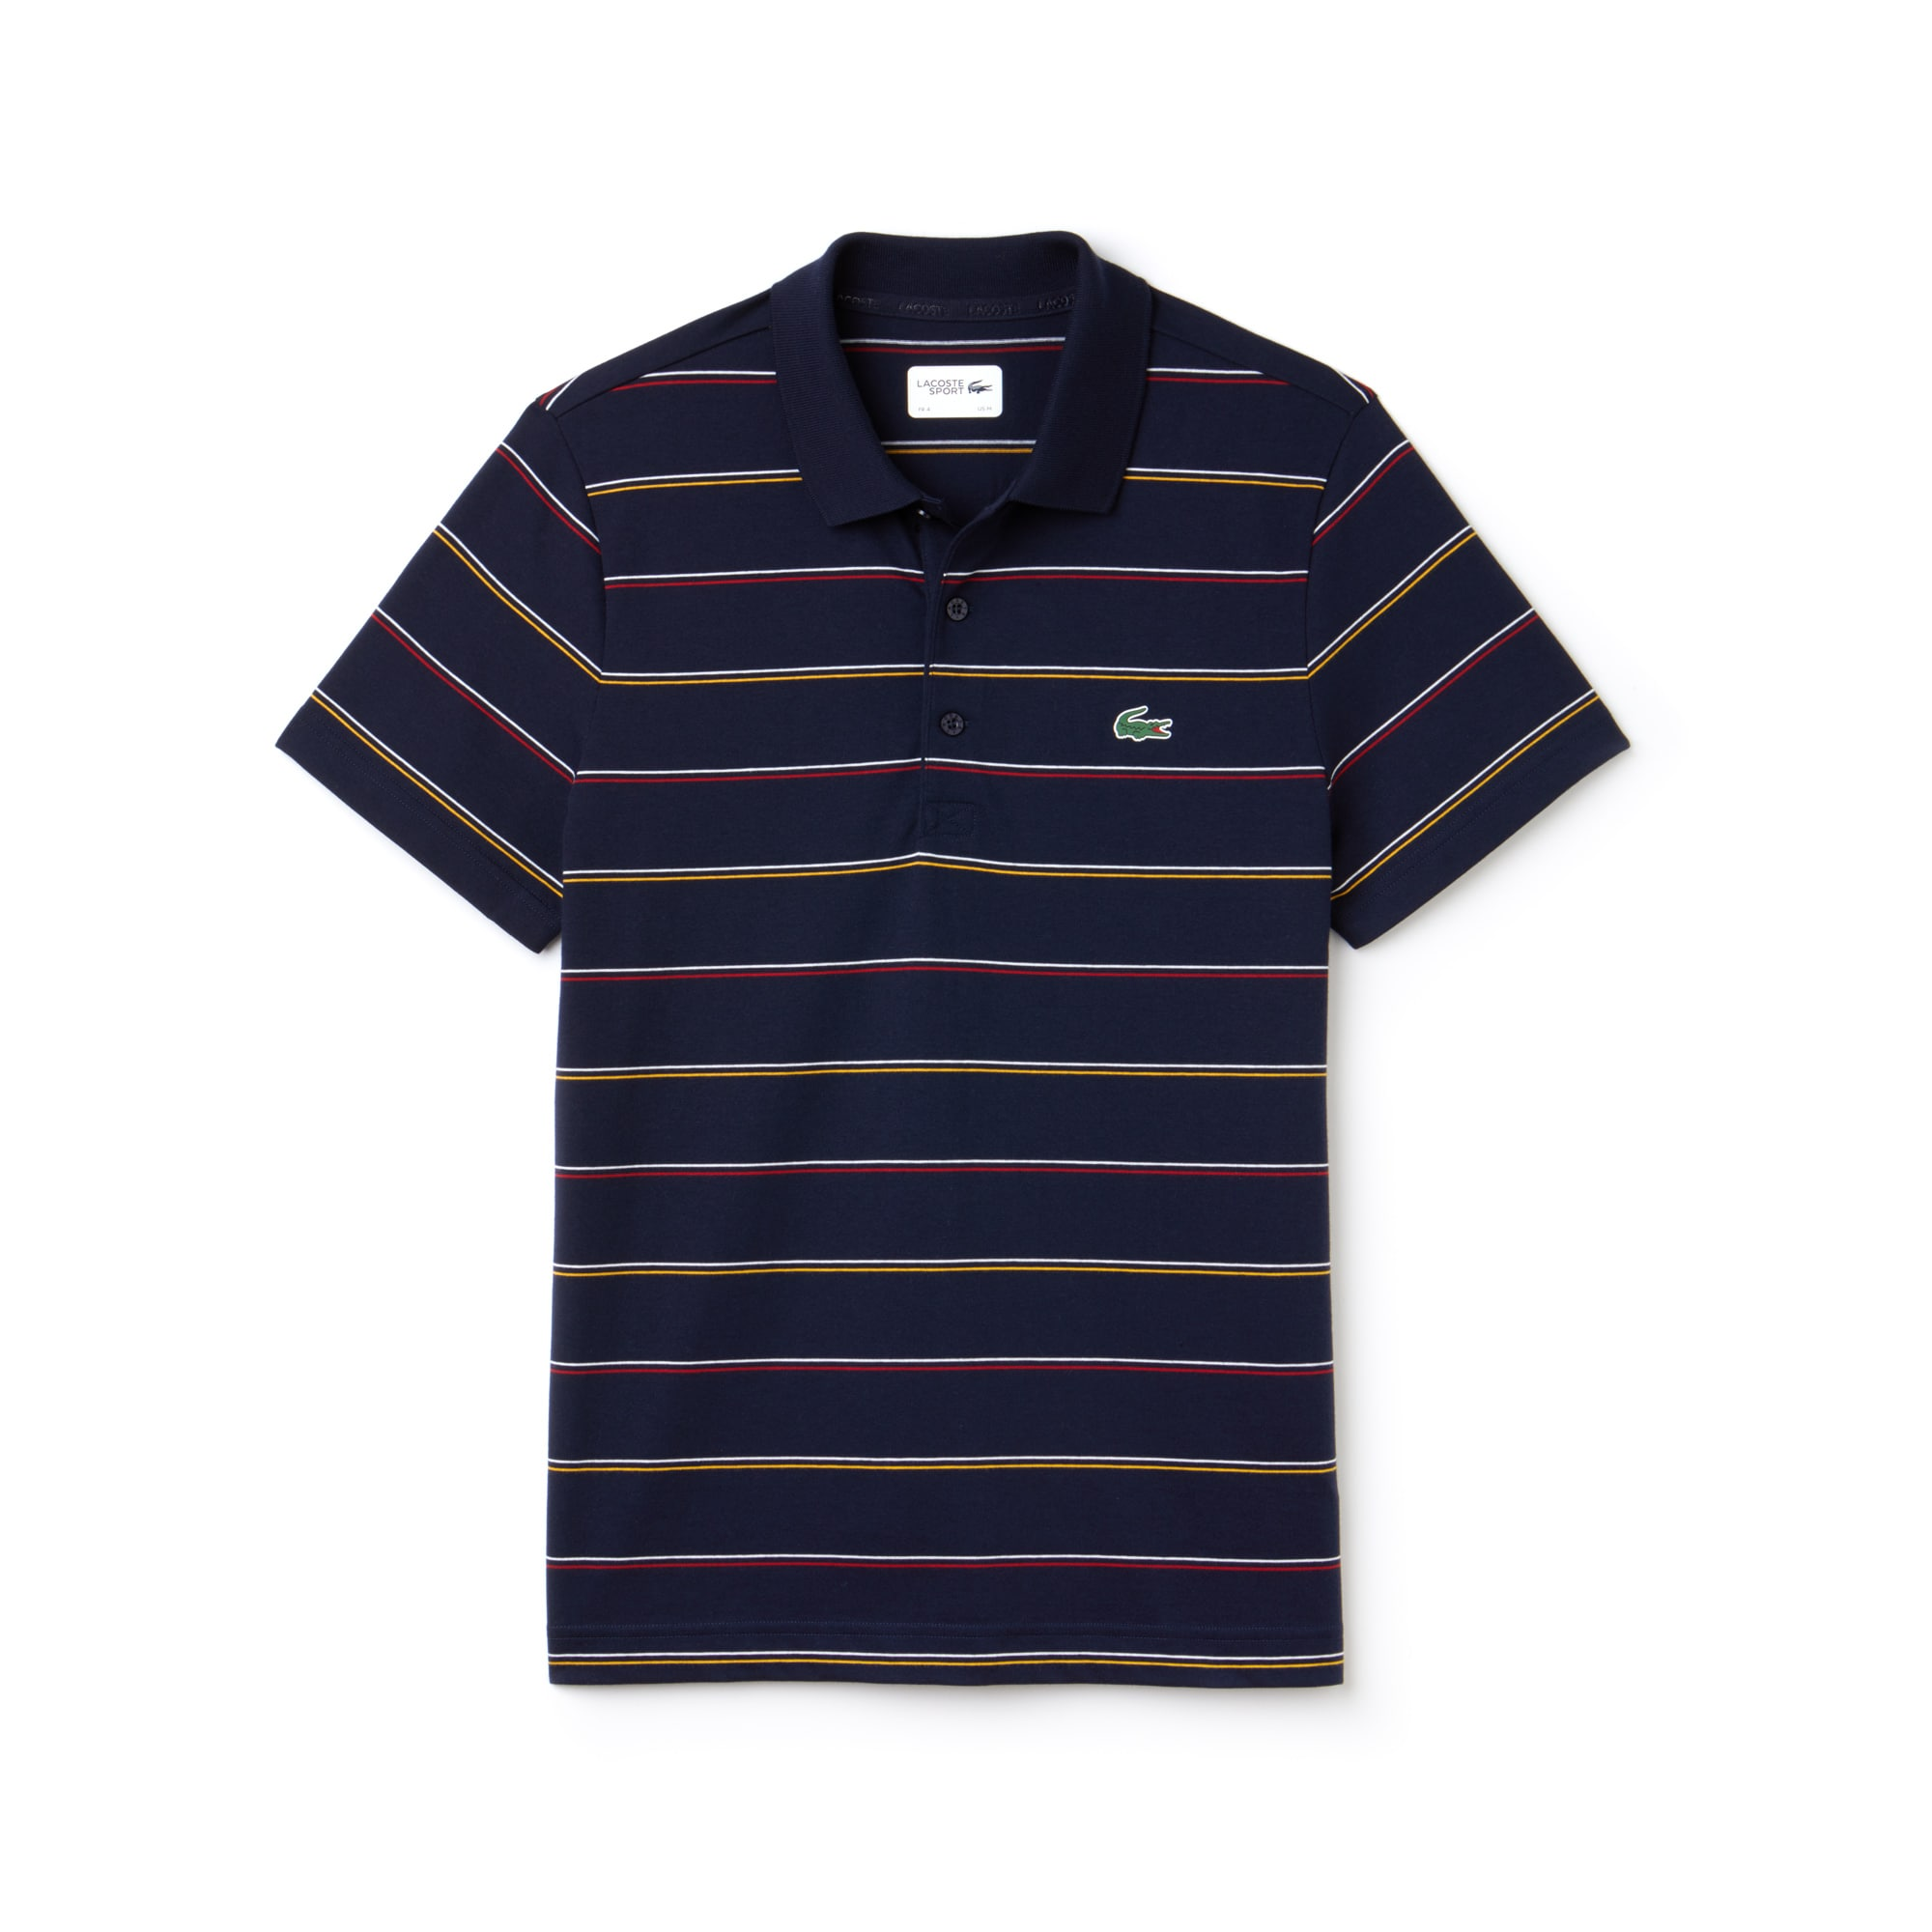 Men's Lacoste SPORT Striped Cotton Jersey Tennis Polo